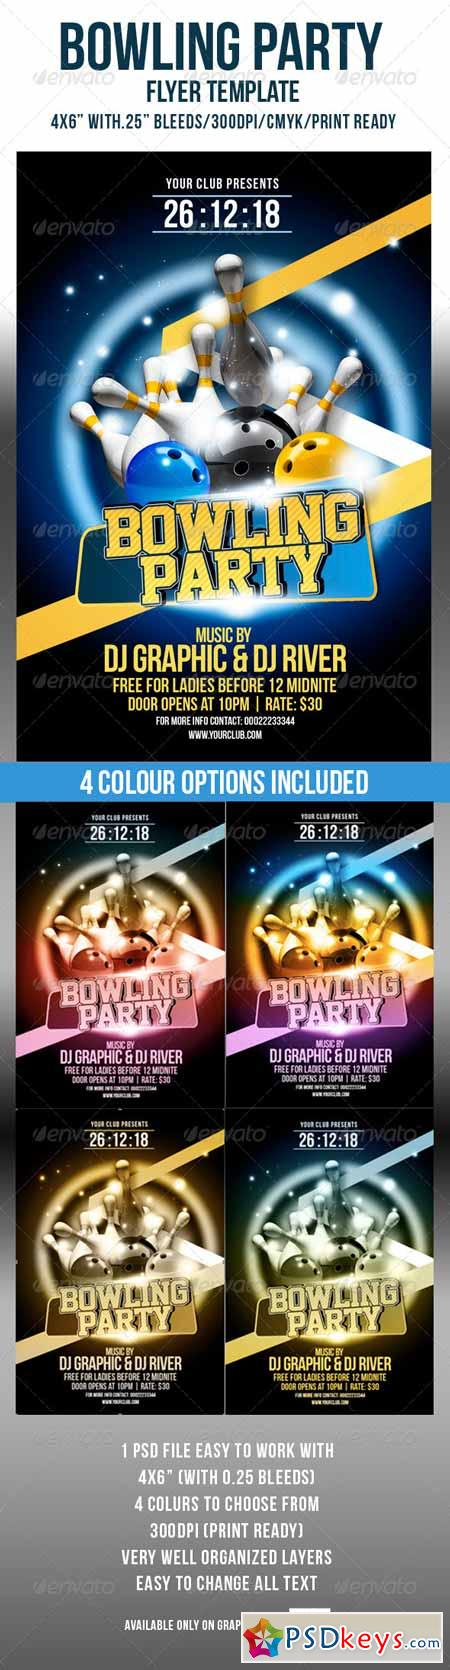 Bowling Party Flyer Template 4583827 » Free Download Photoshop